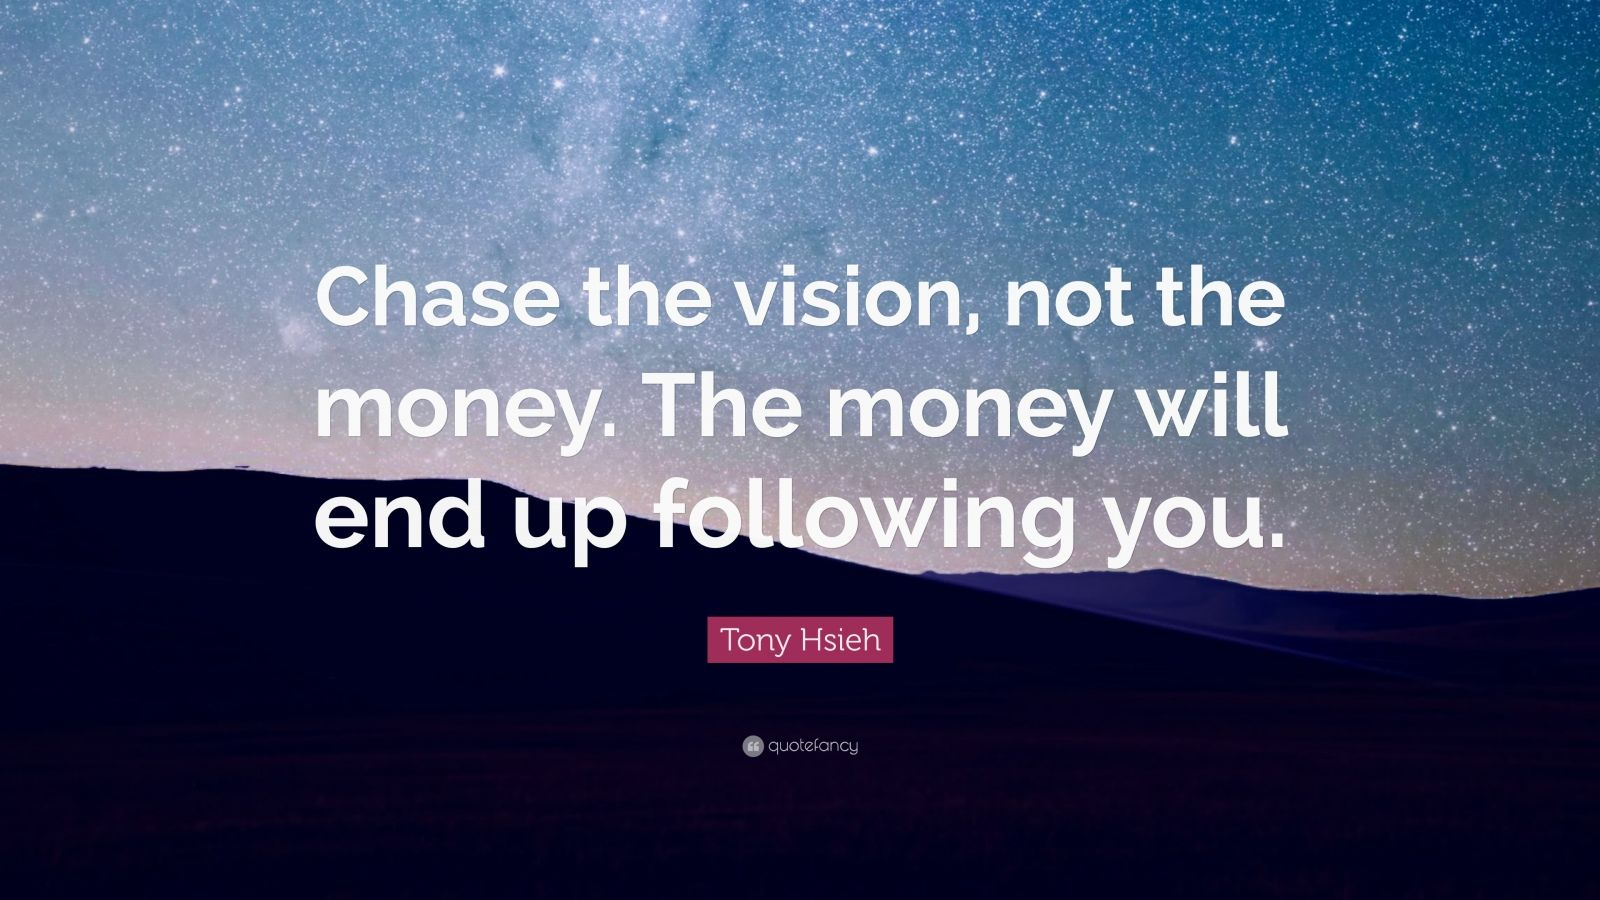 Gary Vaynerchuk Quotes Wallpaper Tony Hsieh Quote Chase The Vision Not The Money The